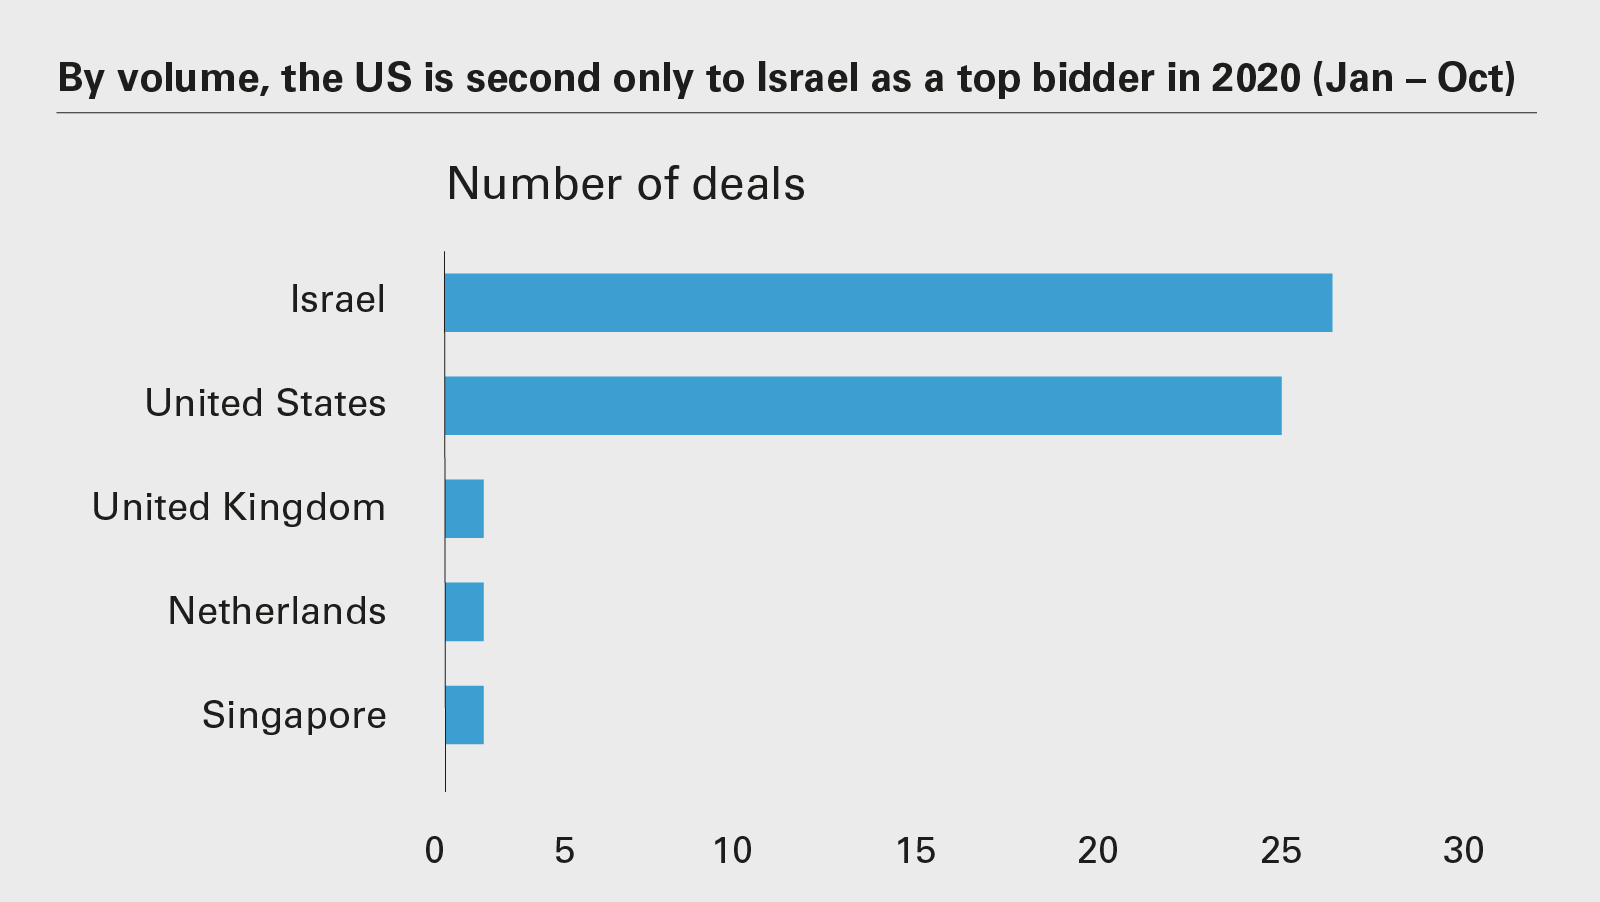 By volume, the US is second only to Israel as a top bidder in 2020 (Jan – Oct)